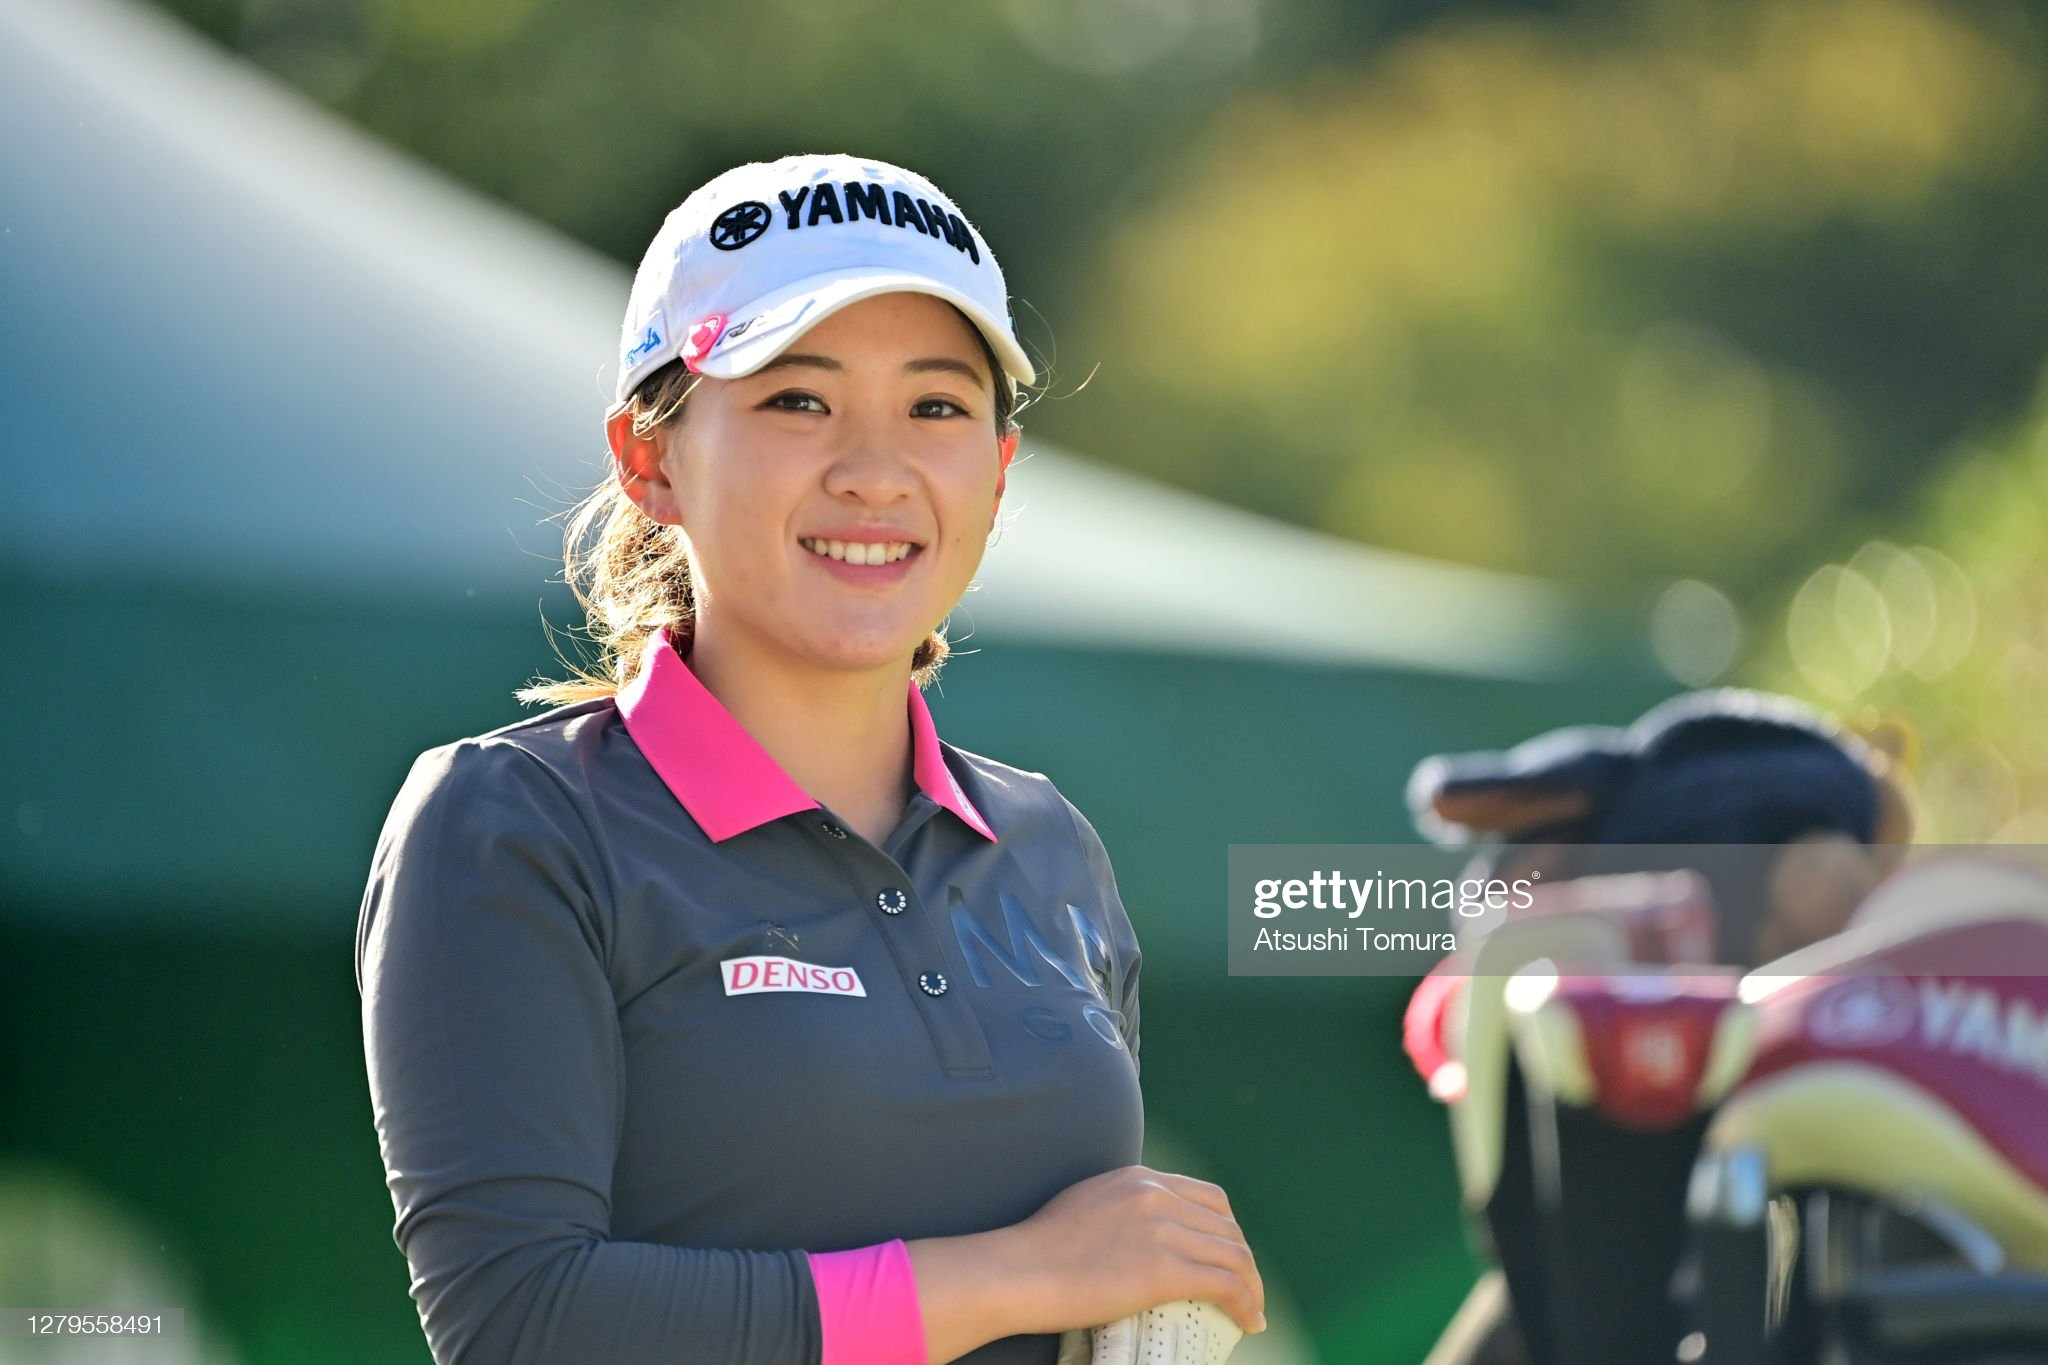 https://media.gettyimages.com/photos/kana-nagai-of-japan-smiles-on-the-1st-tee-during-the-final-round-of-picture-id1279558491?s=2048x2048